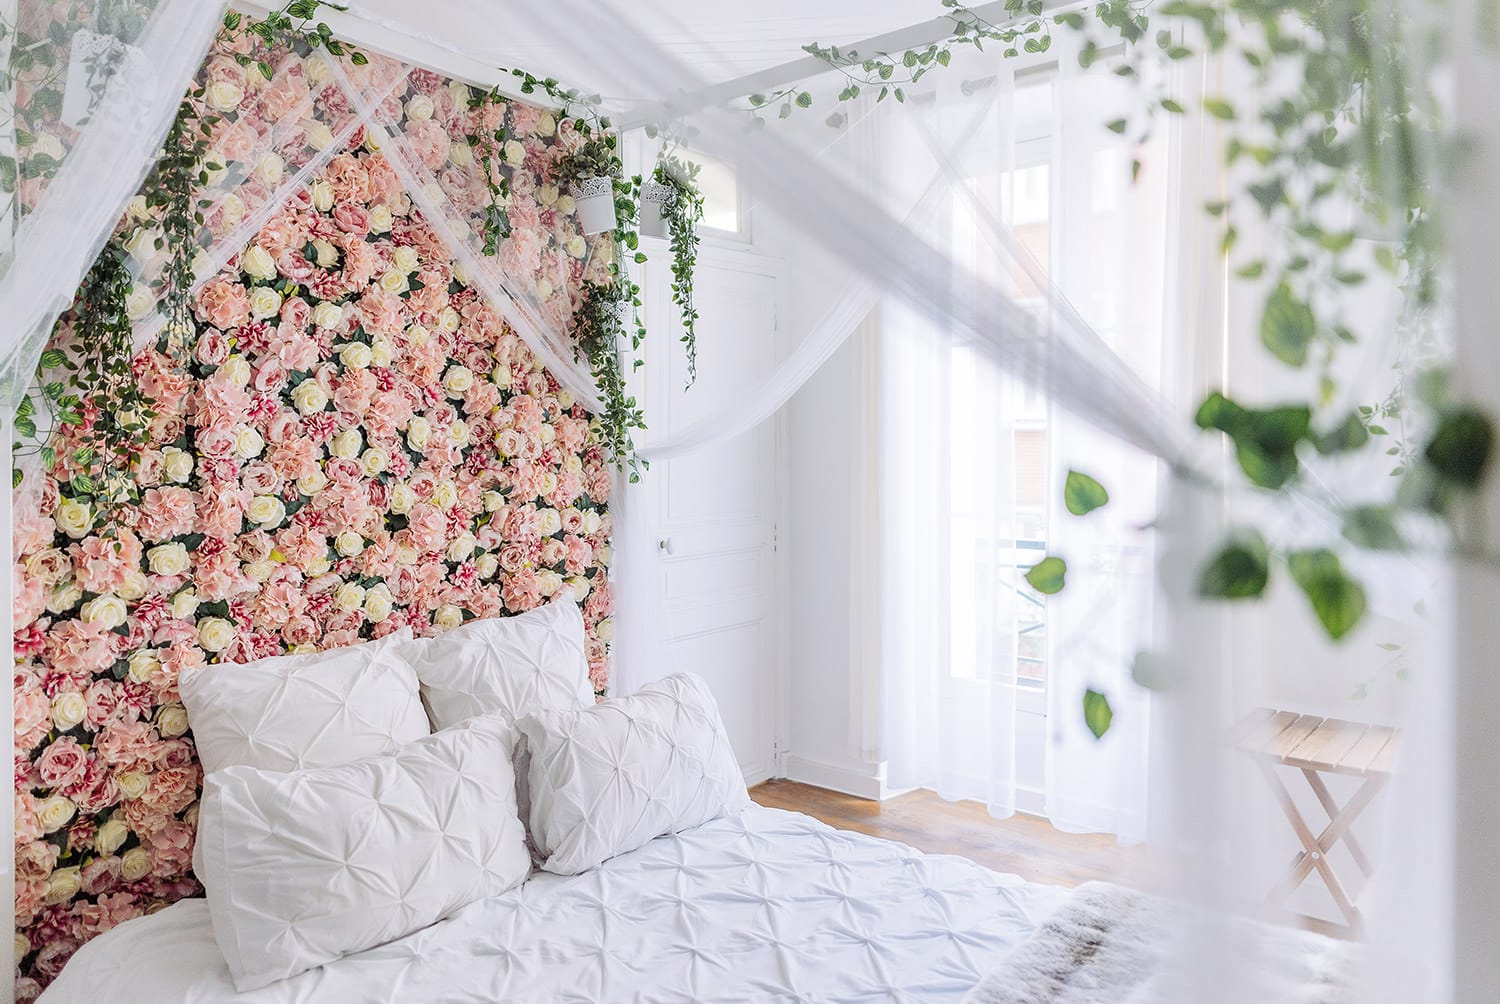 gloria villa paris boudoir photography studio in the middle of le Marais with flower wall bed and 4 poster bed